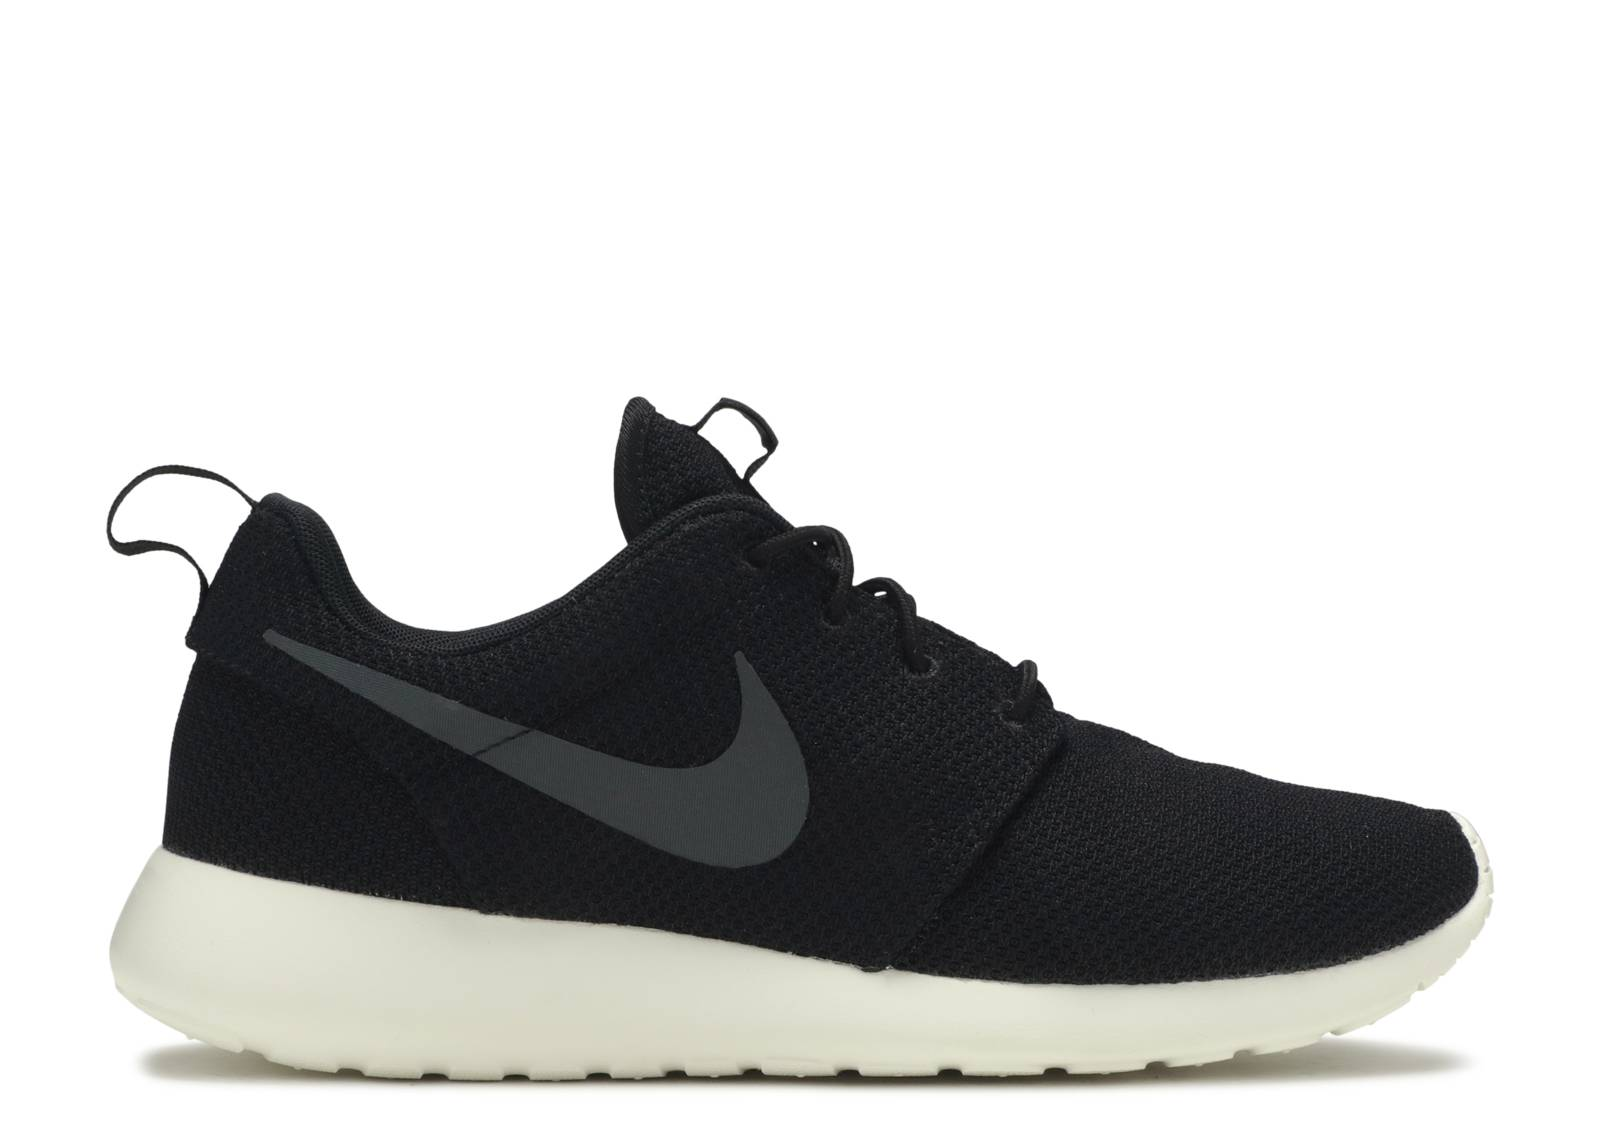 wholesale dealer e6ba1 83454 Rosherun - Nike - 511881 010 - black anthracite-sail   Flight Club